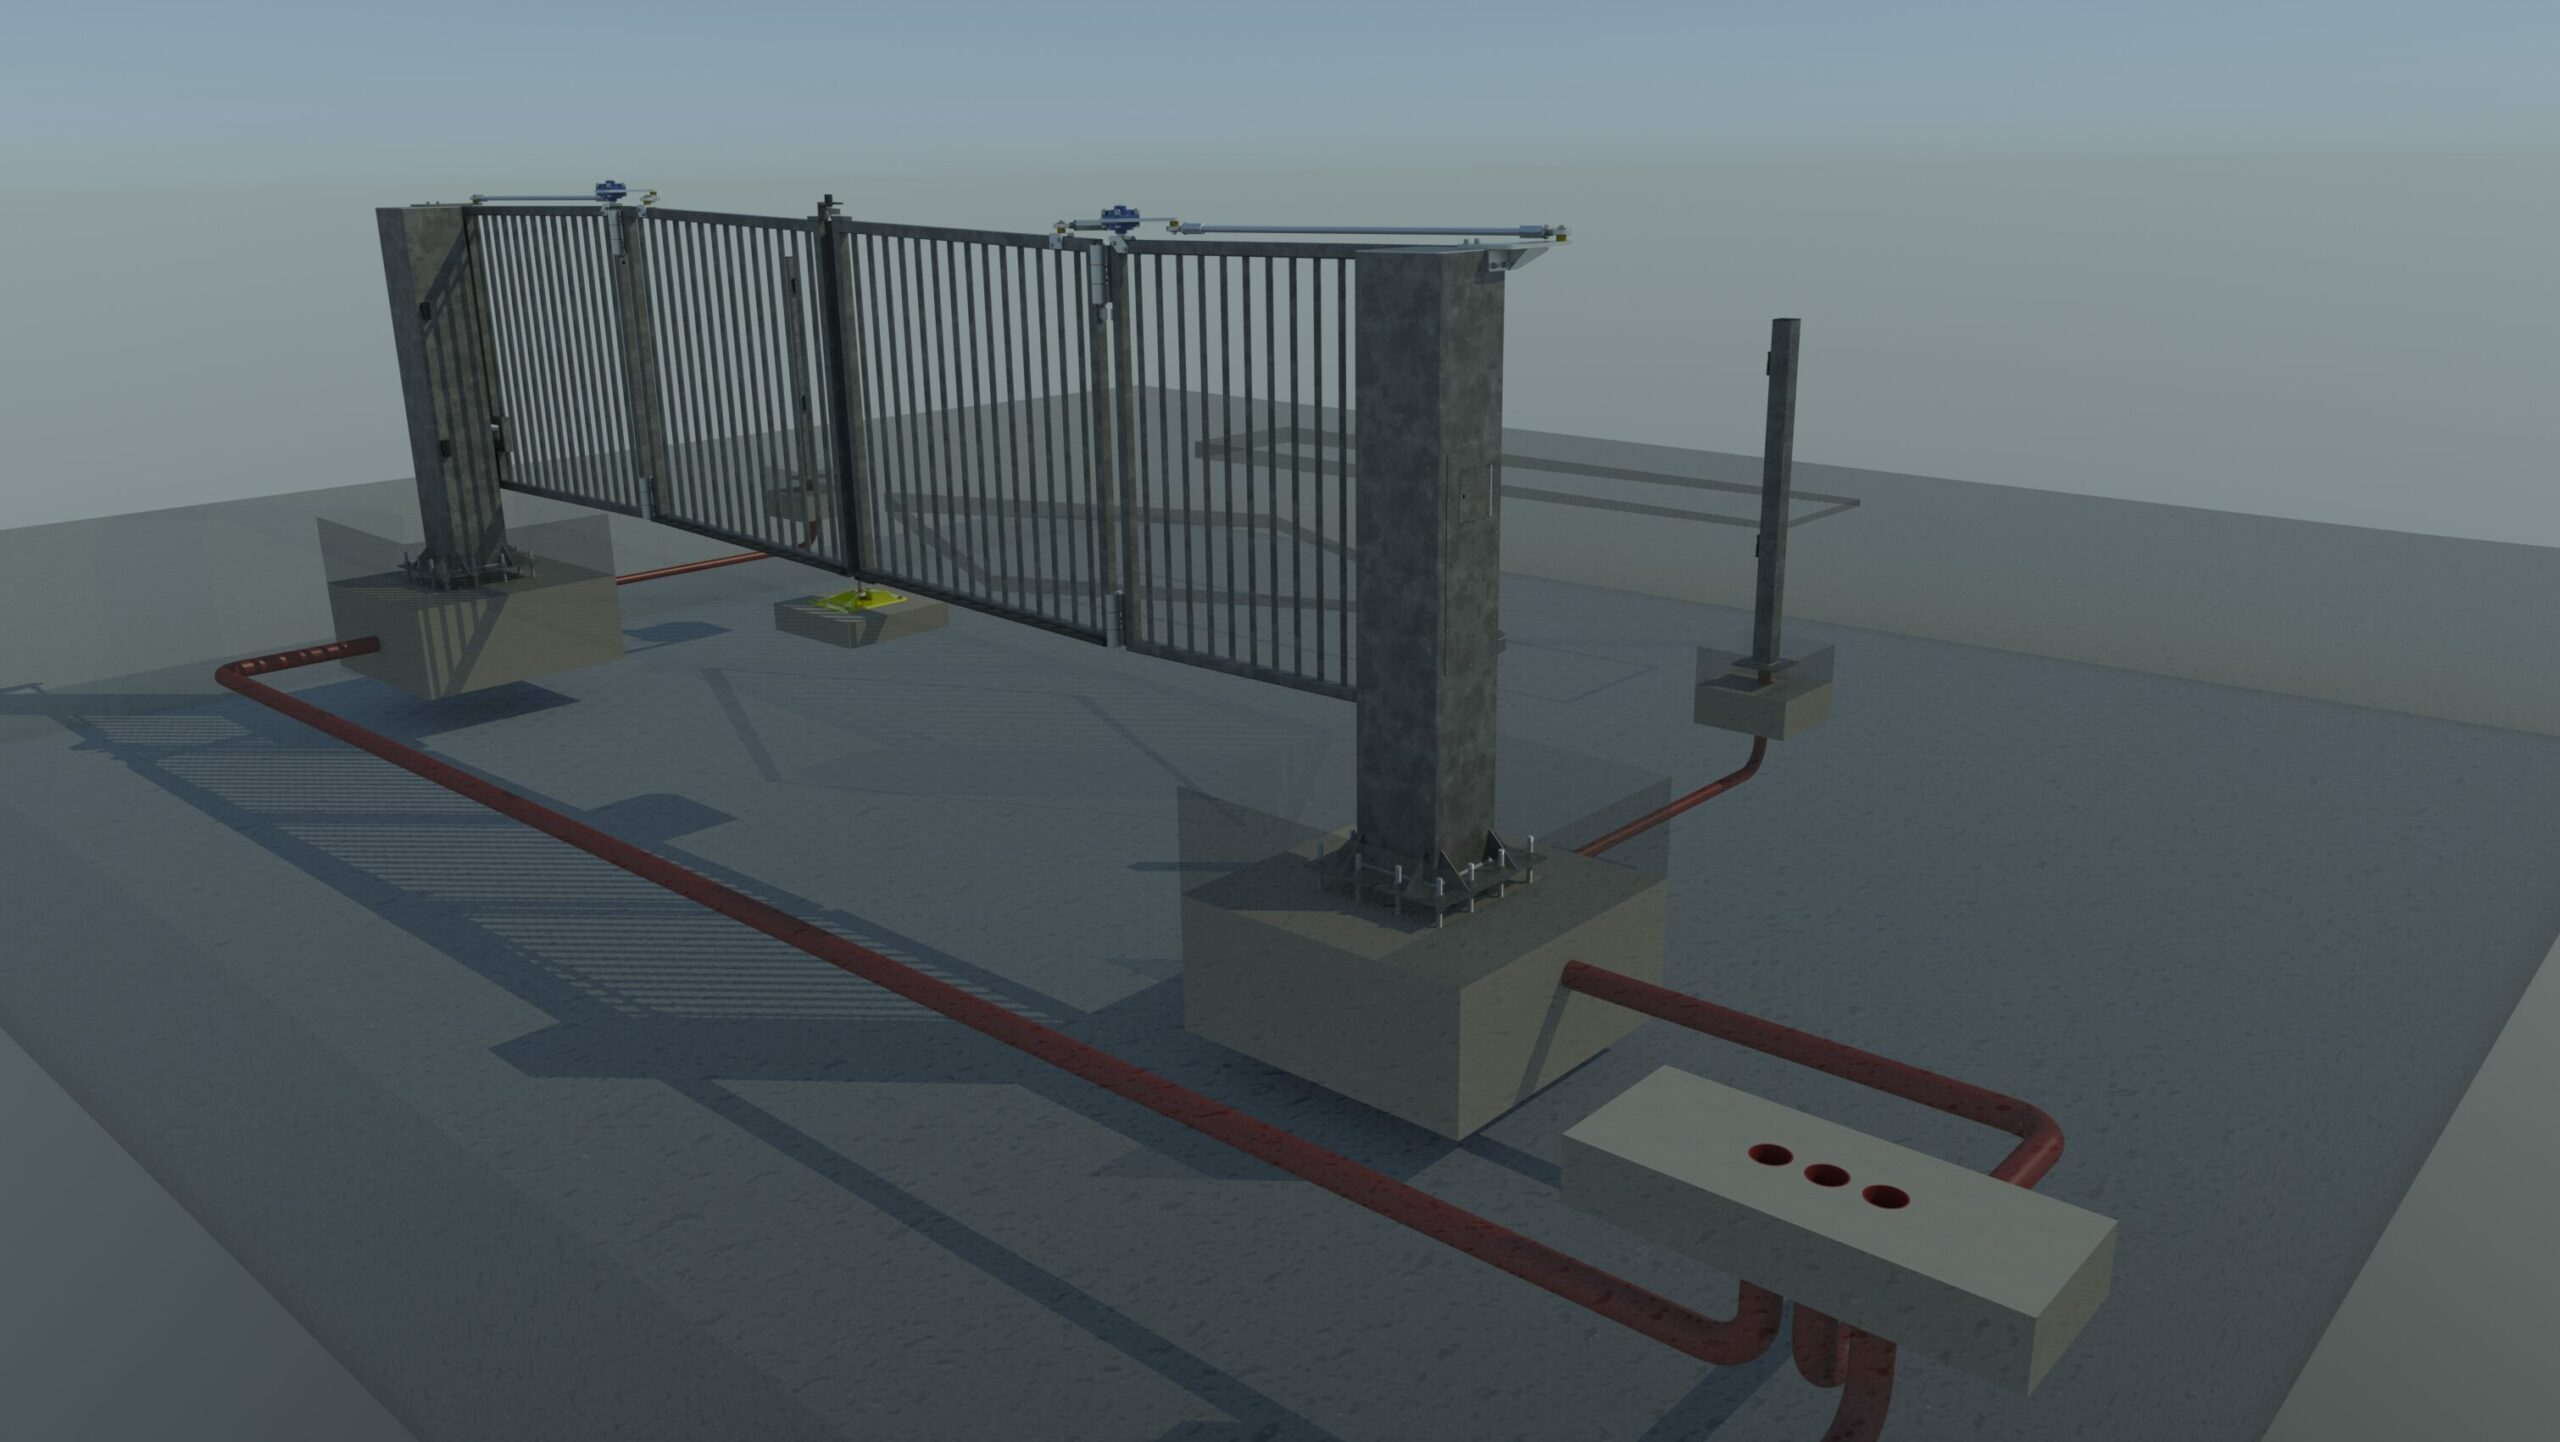 Engineering rendering of an automatic commercial gate showing the underground cabling